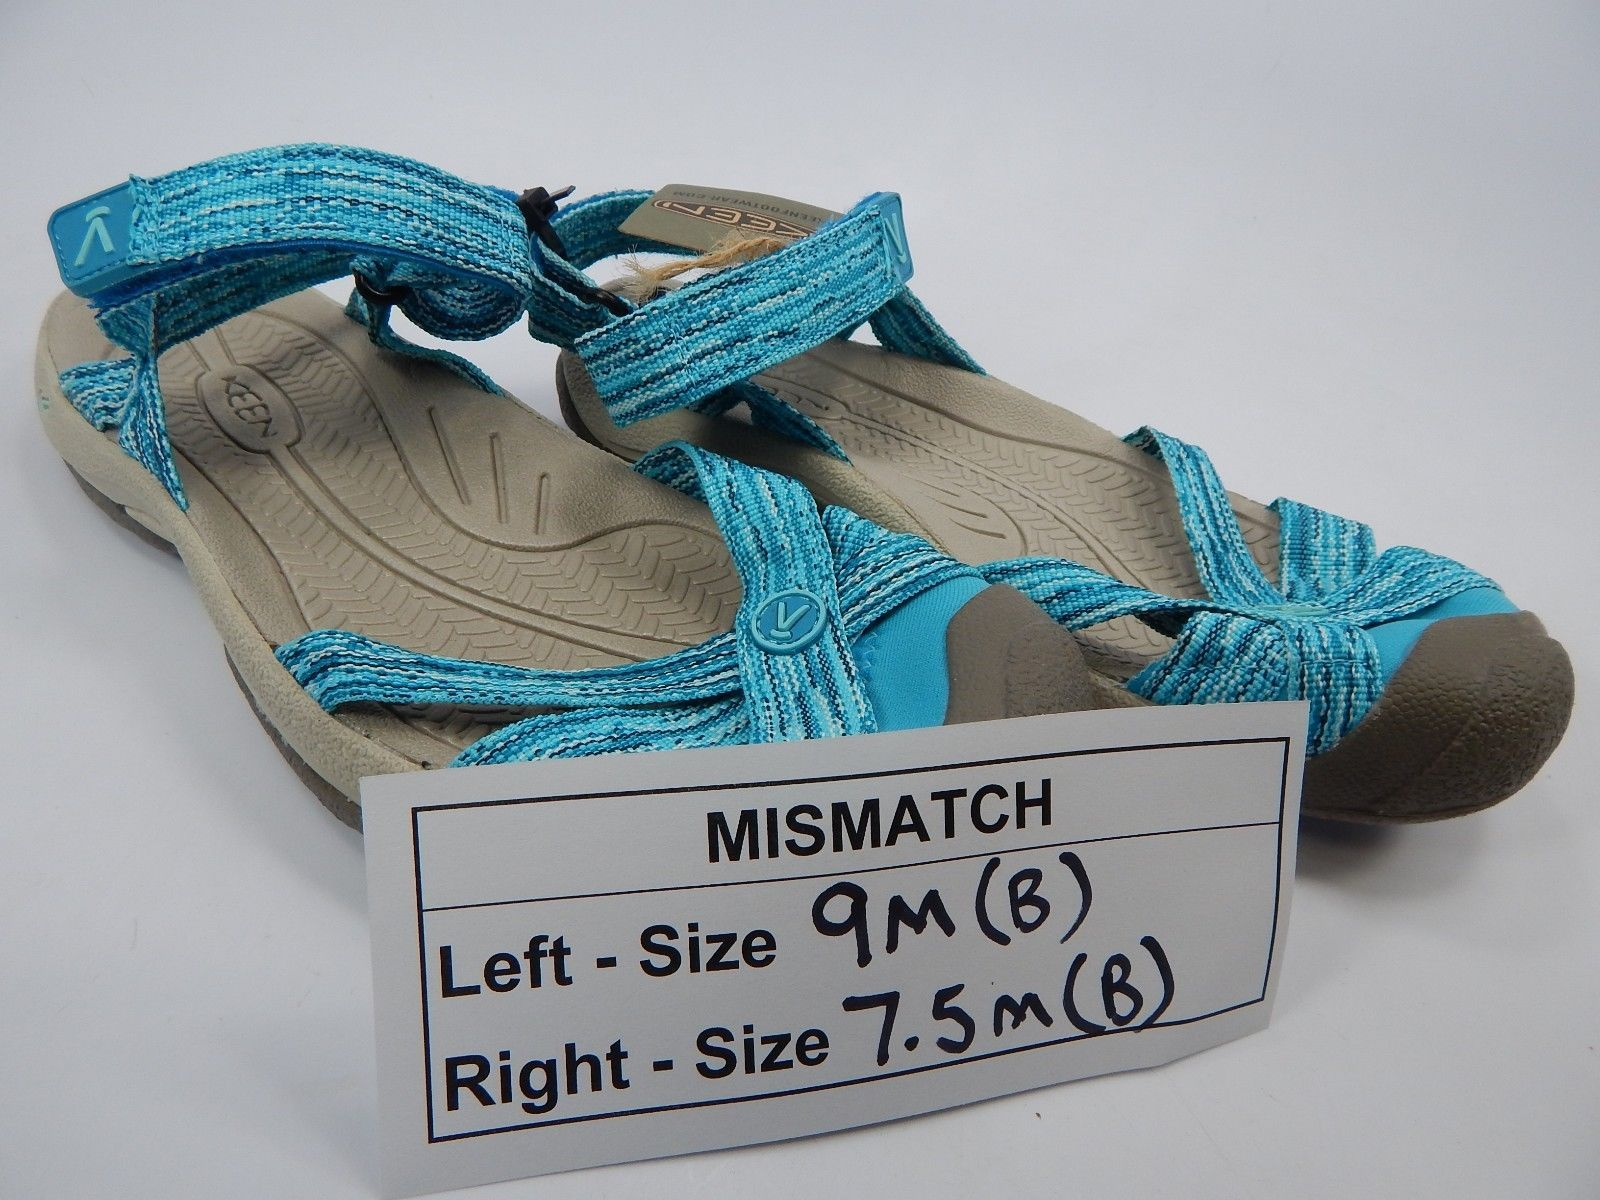 c9166042b10 MISMATCH Keen Bali Strap Size 9 M Left   and 49 similar items